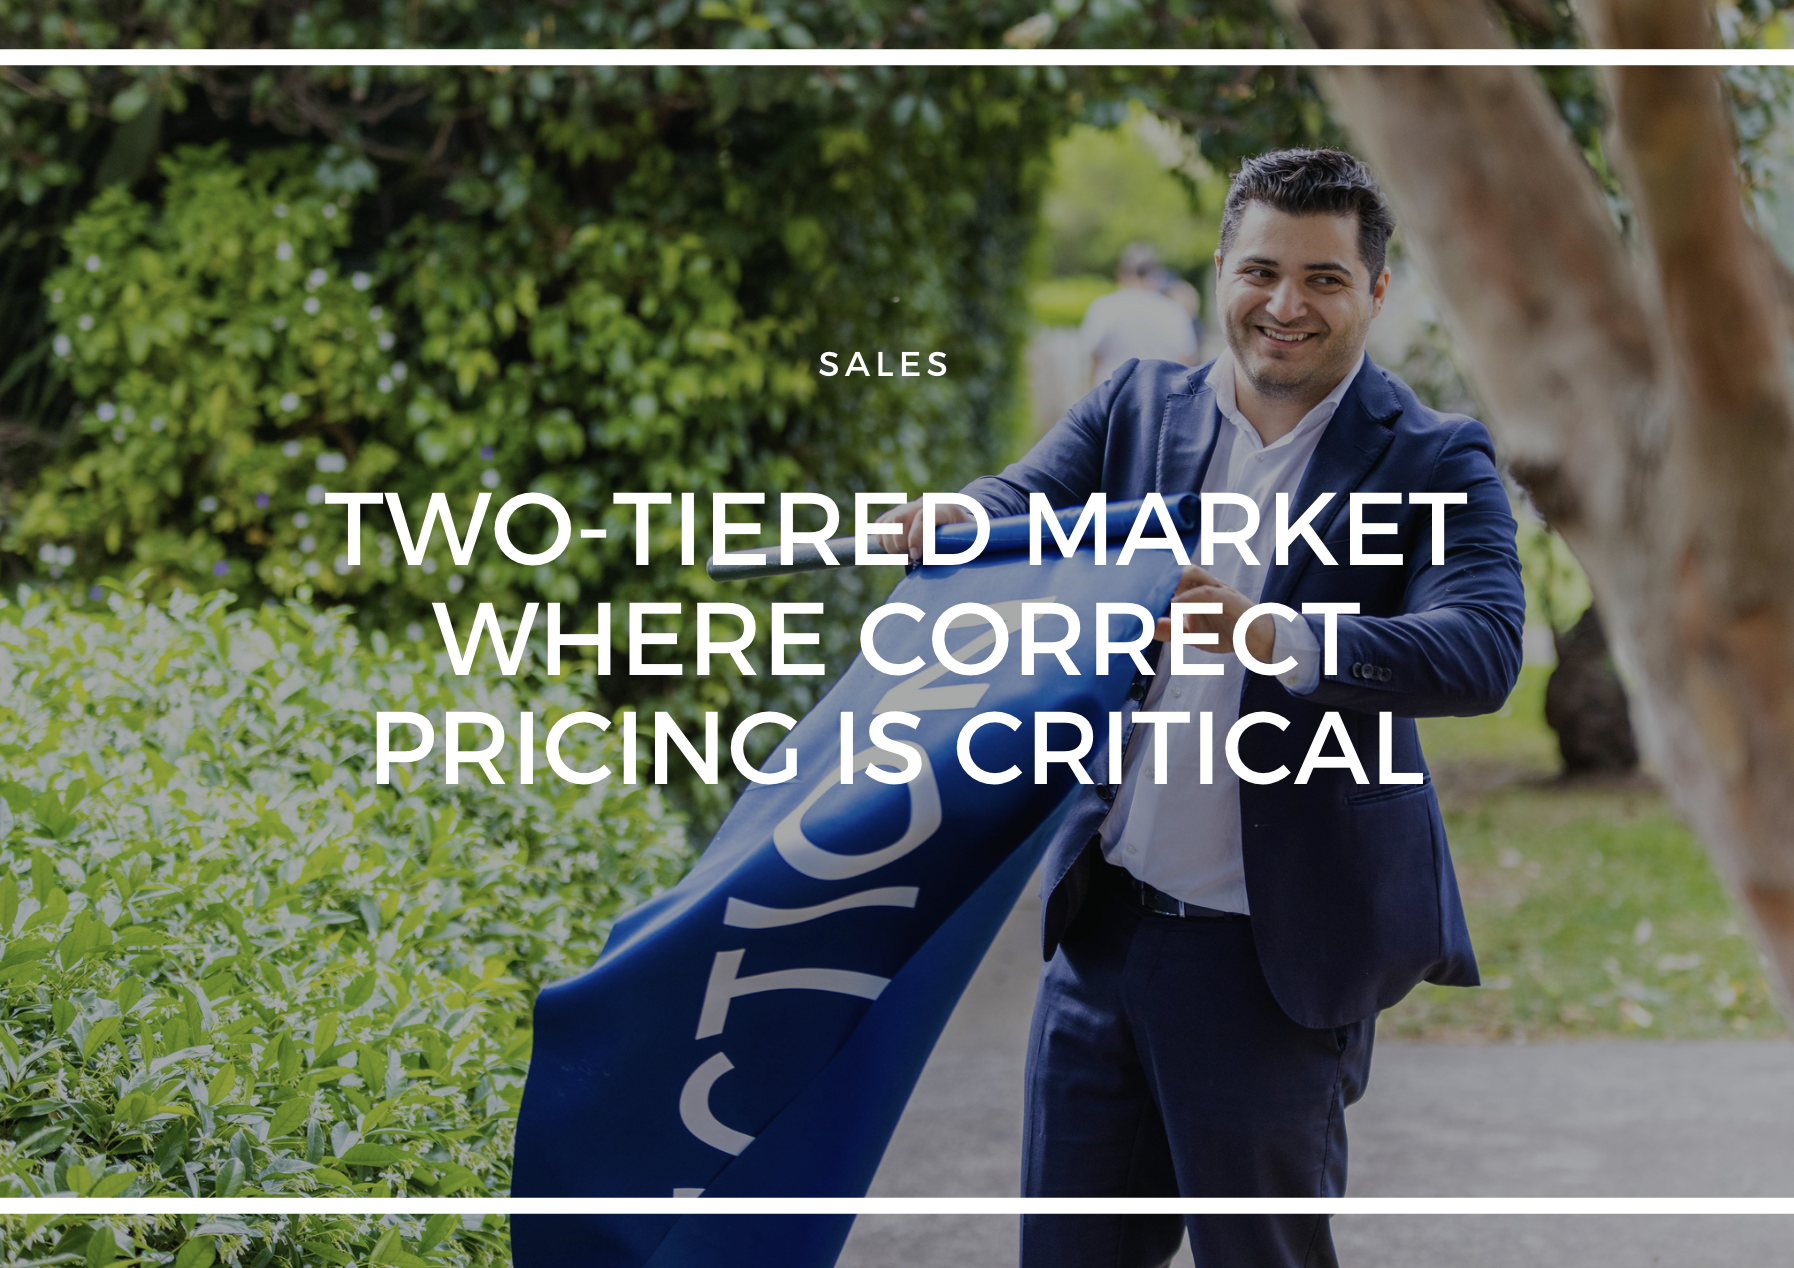 TWO-TIERED MARKET WHERE CORRECT PRICING IS CRITICAL